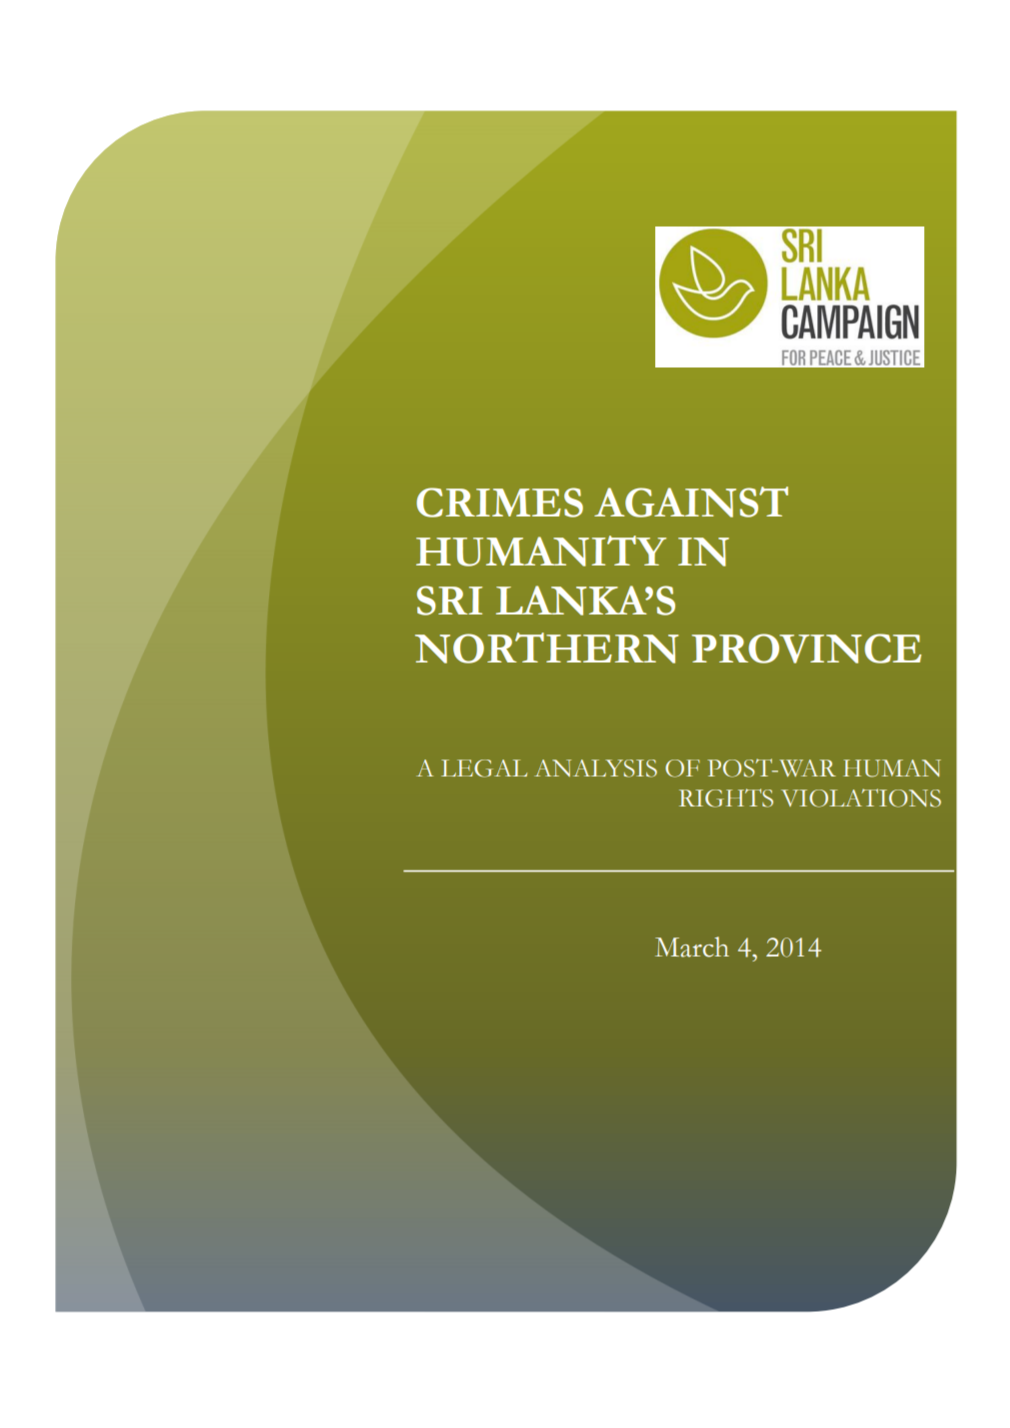 Crimes Against Humanity Report, Sri Lanka Campaign, March 2014